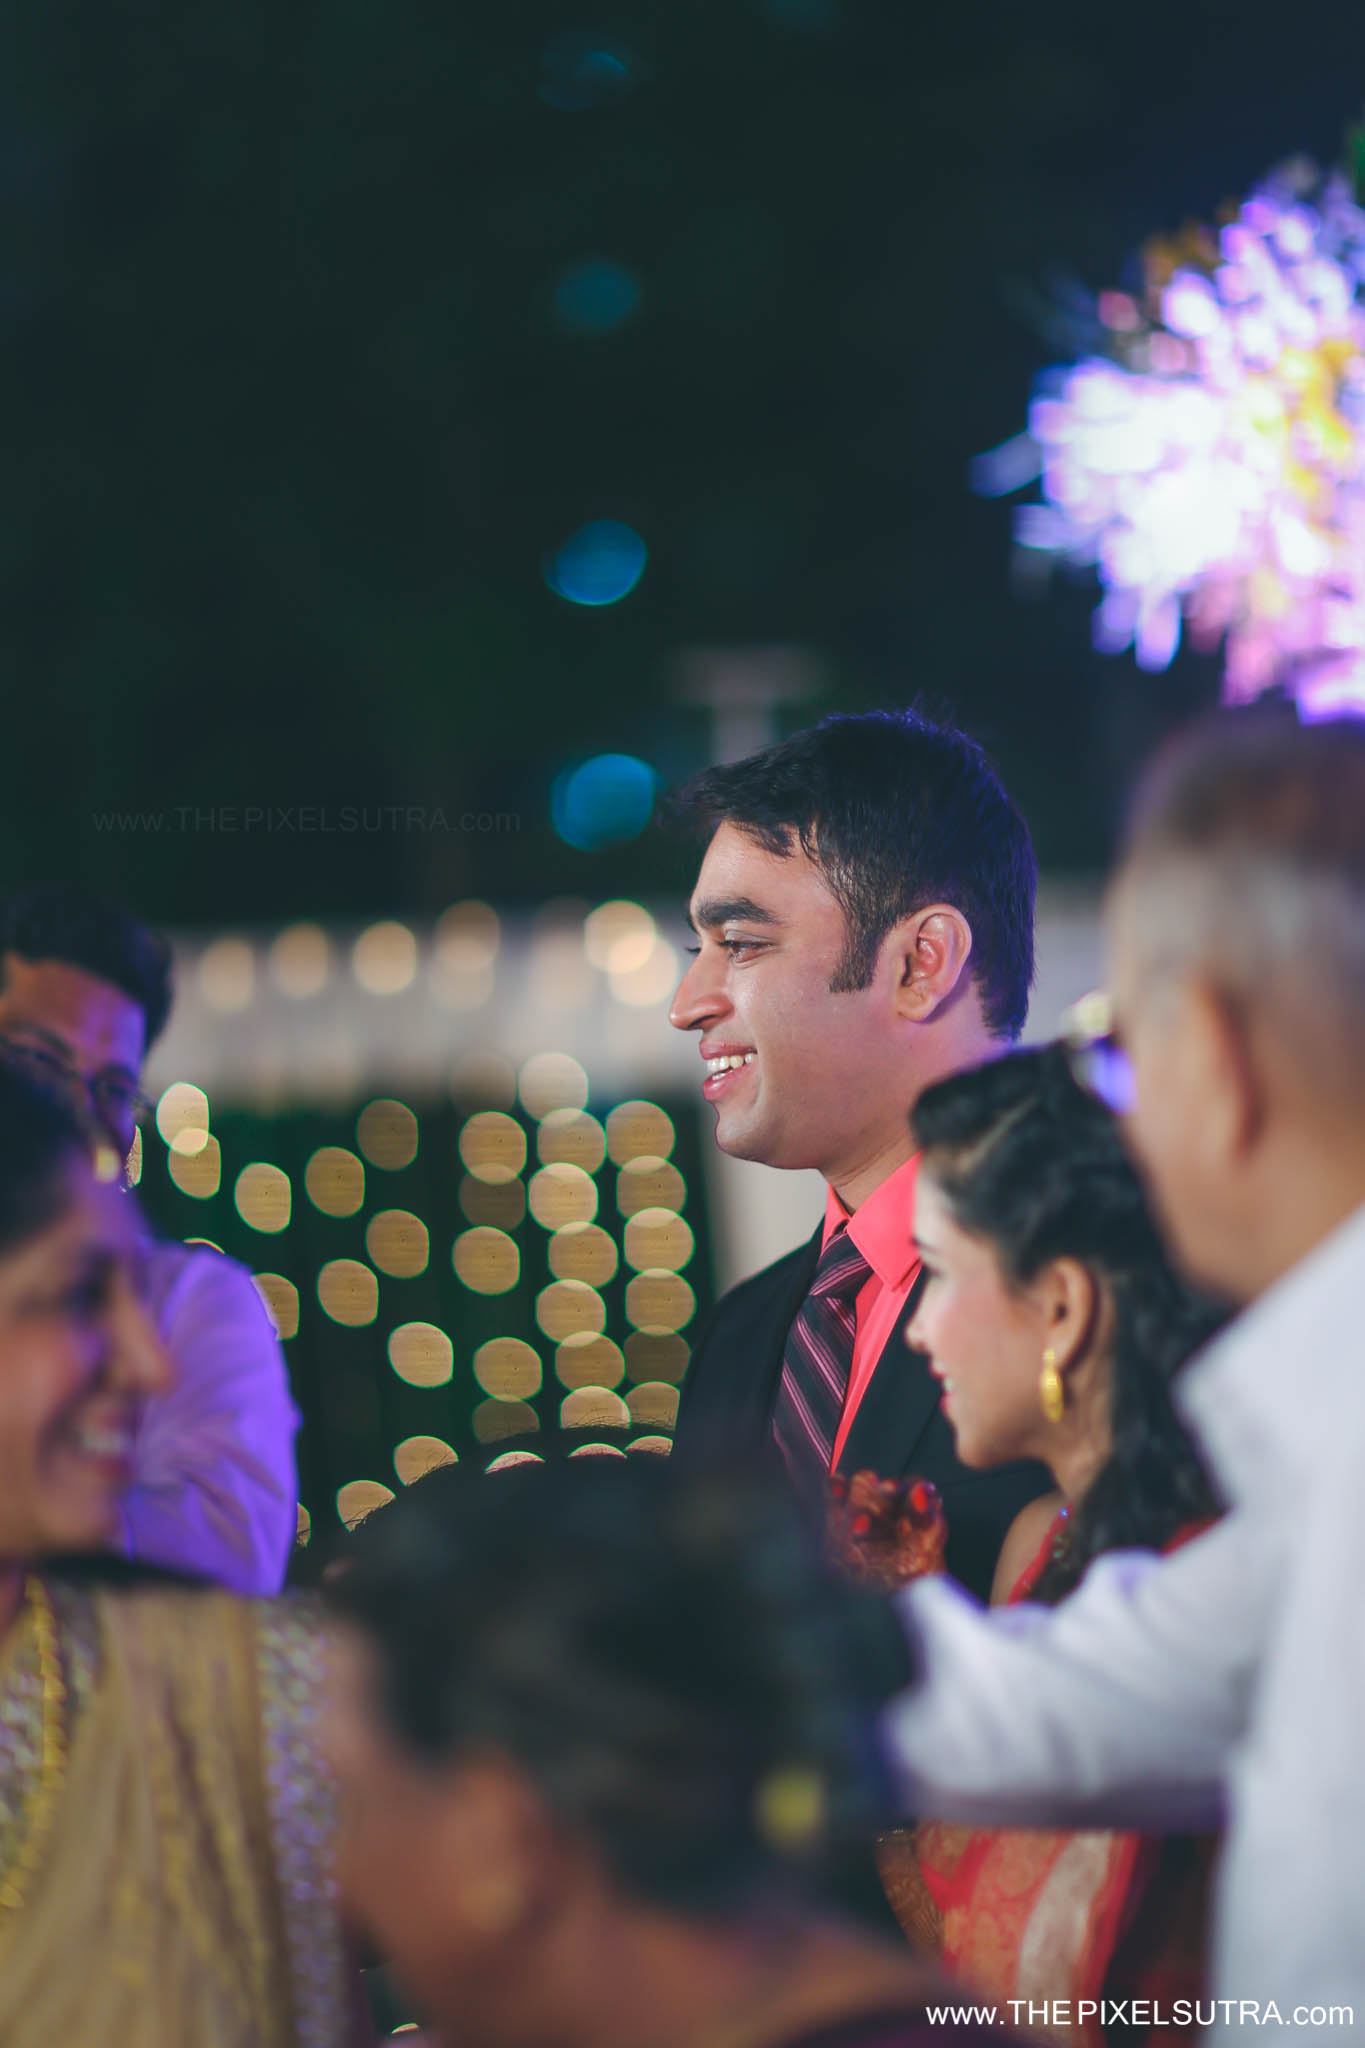 The Pixel Sutra Nachiket x Priyanka Candid Wedding photographer Mumbai Best  (62).jpg